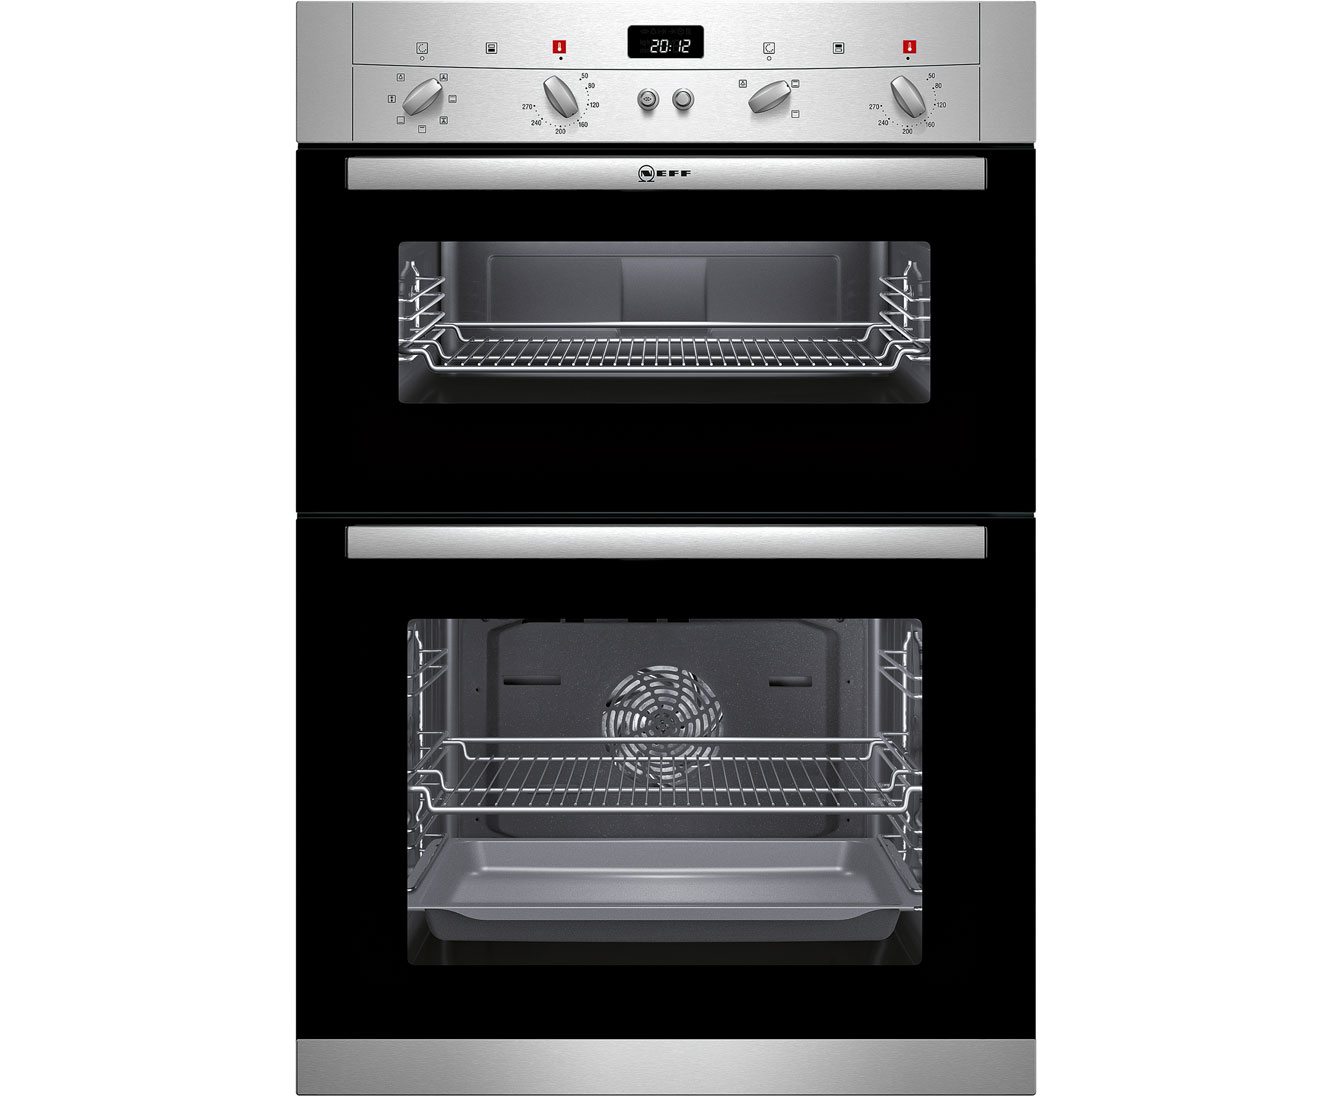 Neff Classic Collection 2 U12S52N3GB Built In Double Oven - Stainless Steel